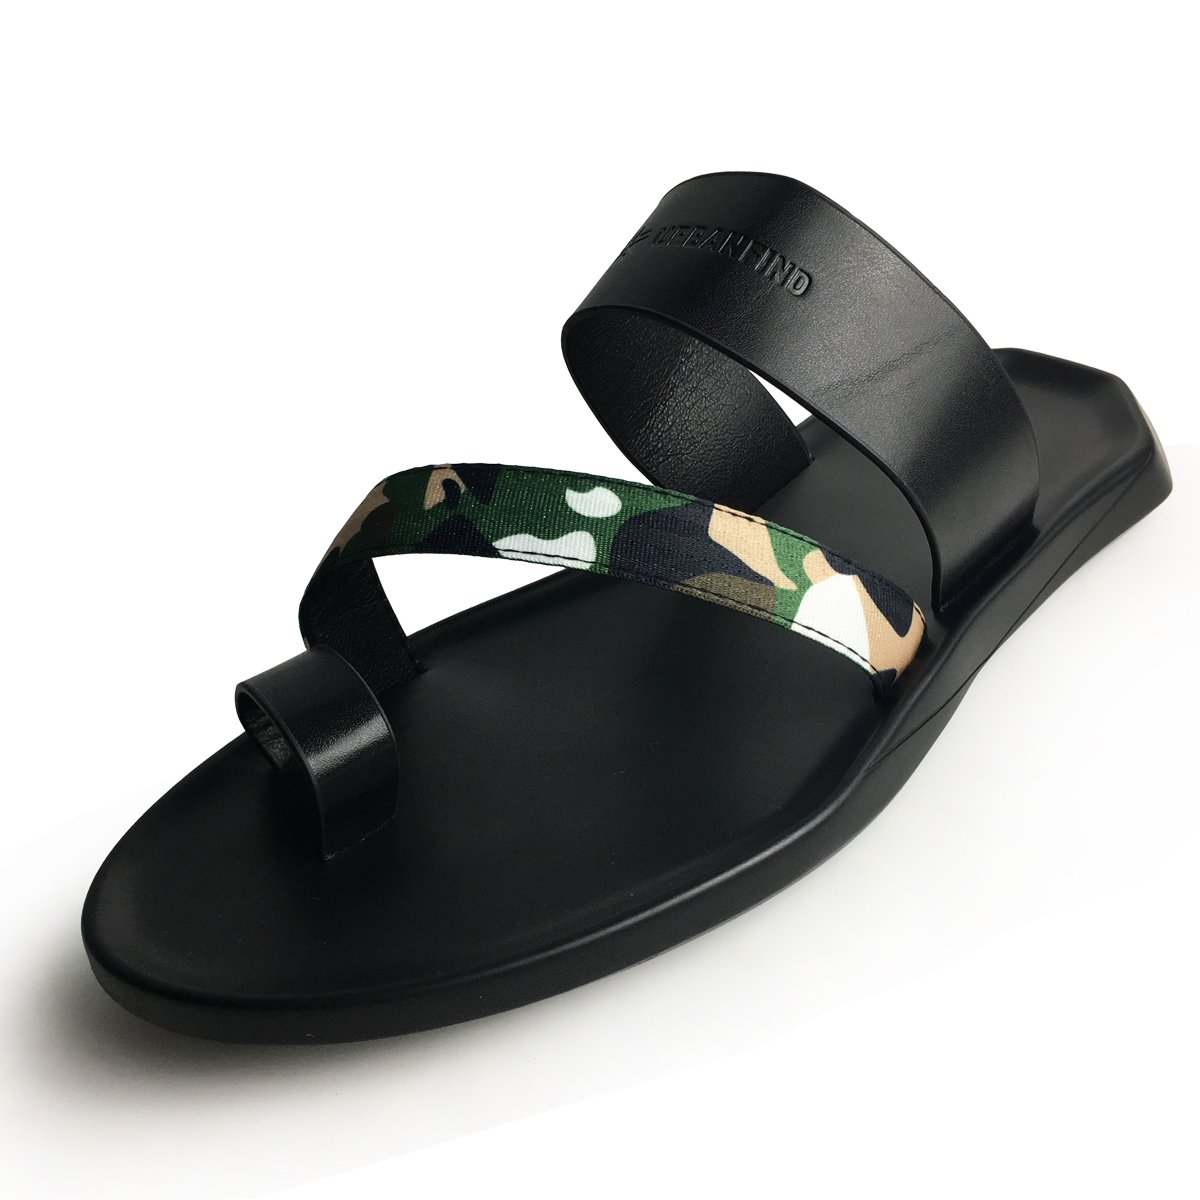 URBANFIND Men's Beach Wedding Flip Flops Vintage PU Leather Thong Slides Sandals Casual Summer Mules Clogs Shoes FKX006